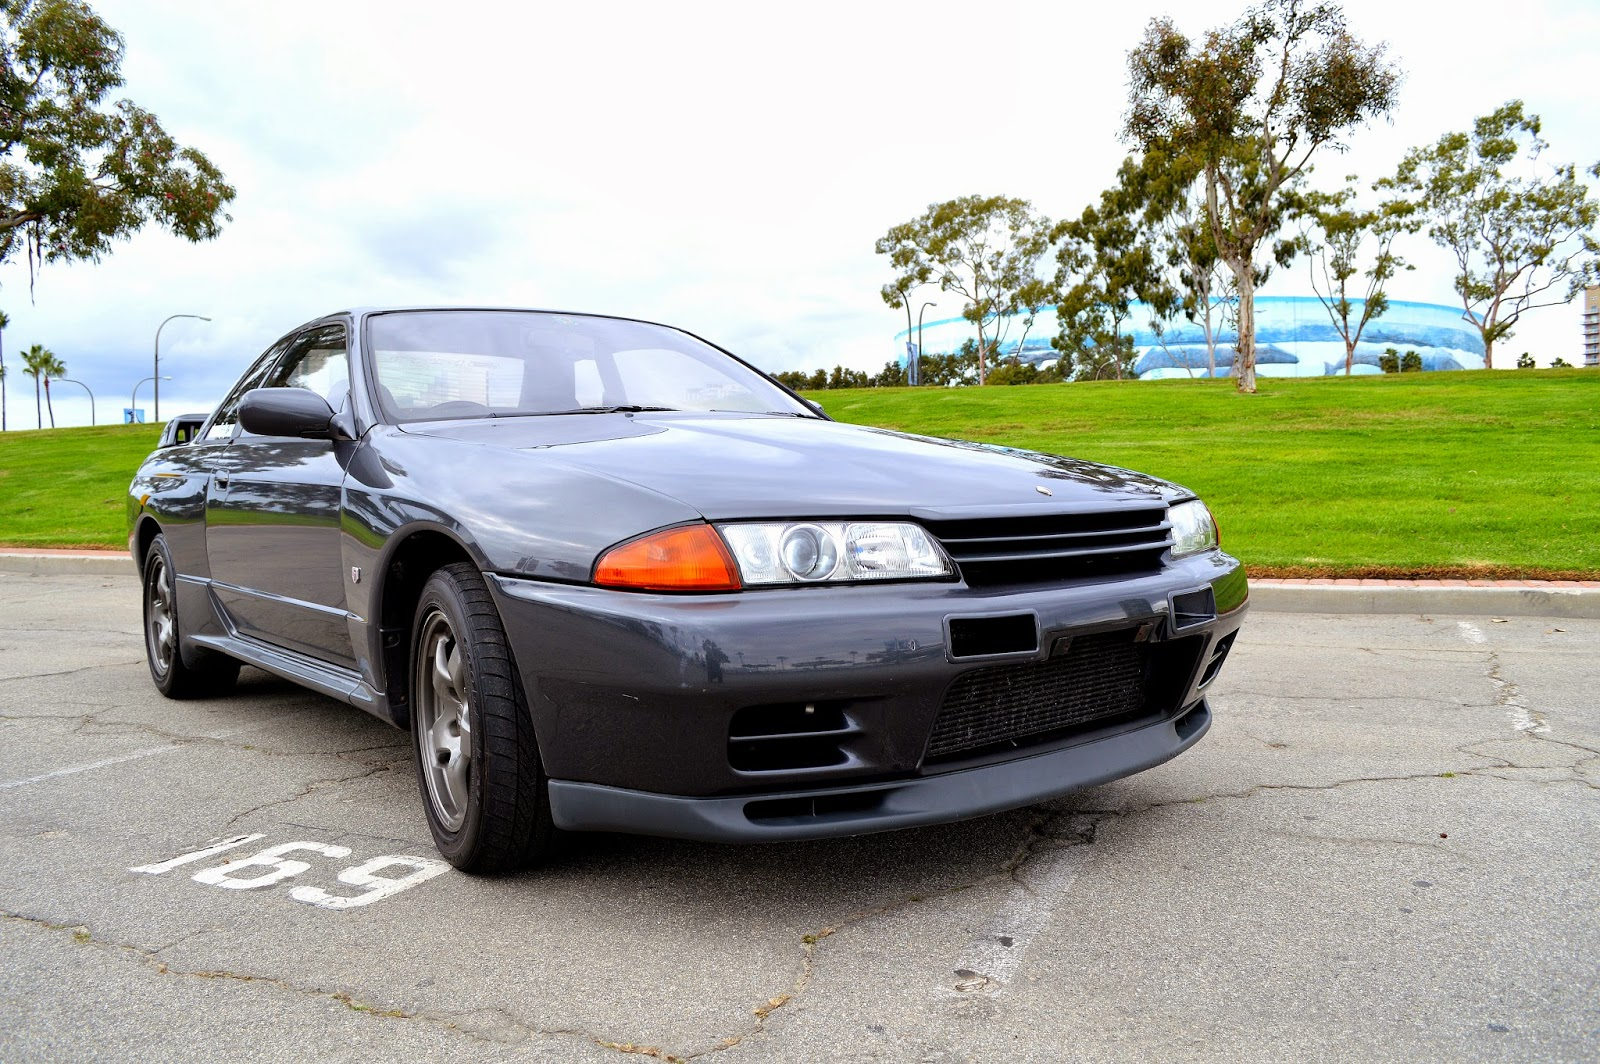 Nissan skyline gt r s in the usa blog how to title and register a how to title and register a 1989 nissan skyline in the usa 25 year old car importation vanachro Gallery